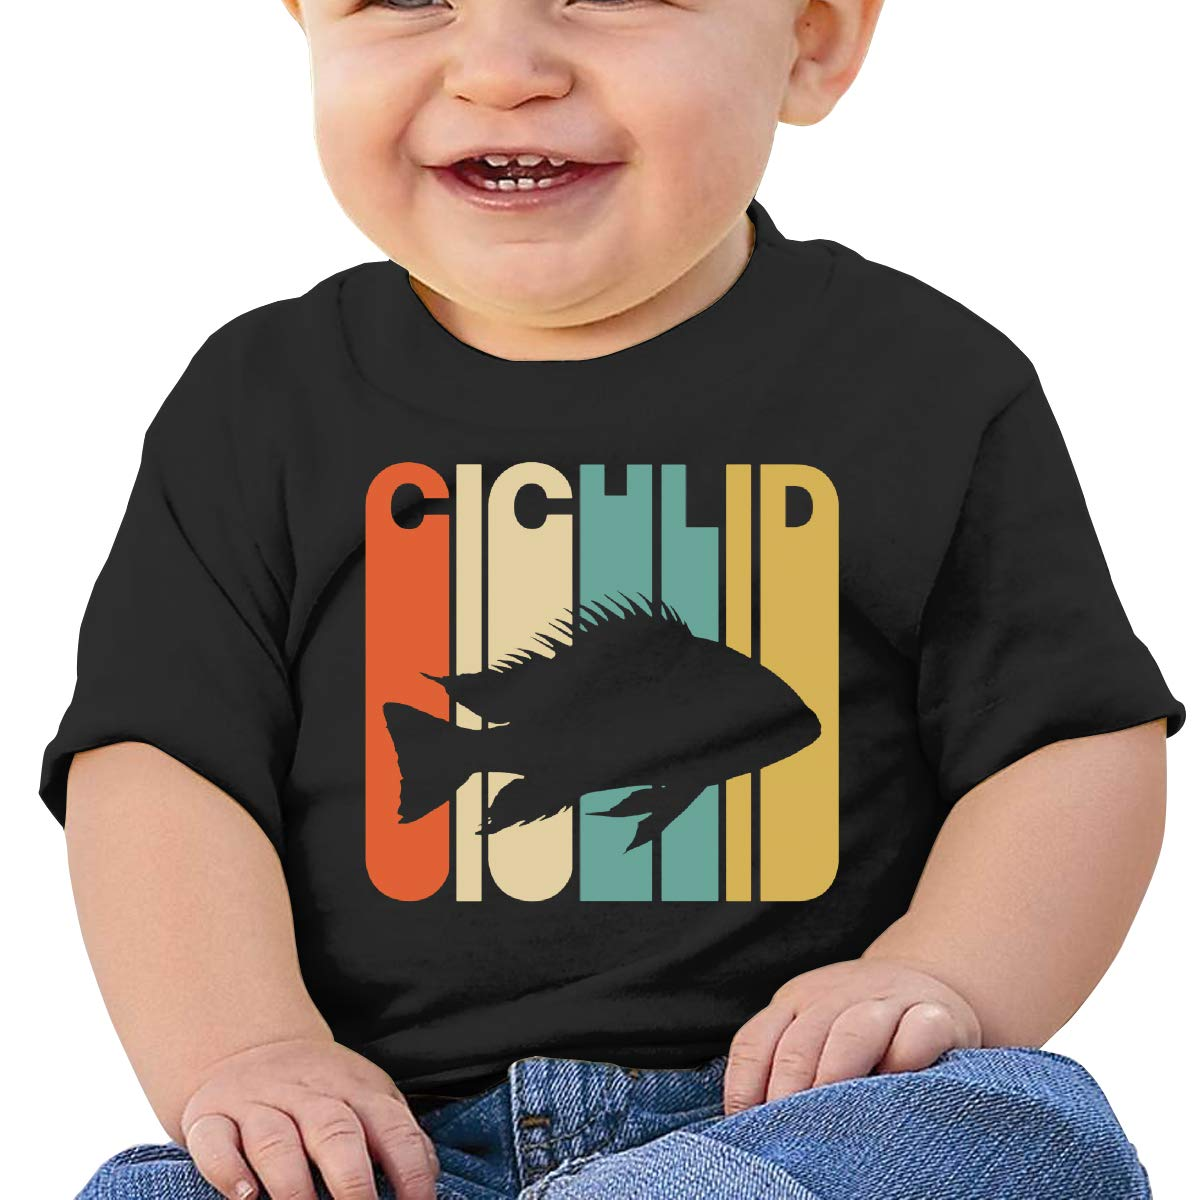 Vintage Style Cichlid Silhouette Baby Girl Newborn Short Sleeve T-Shirt 6-24 Month Cotton Tops